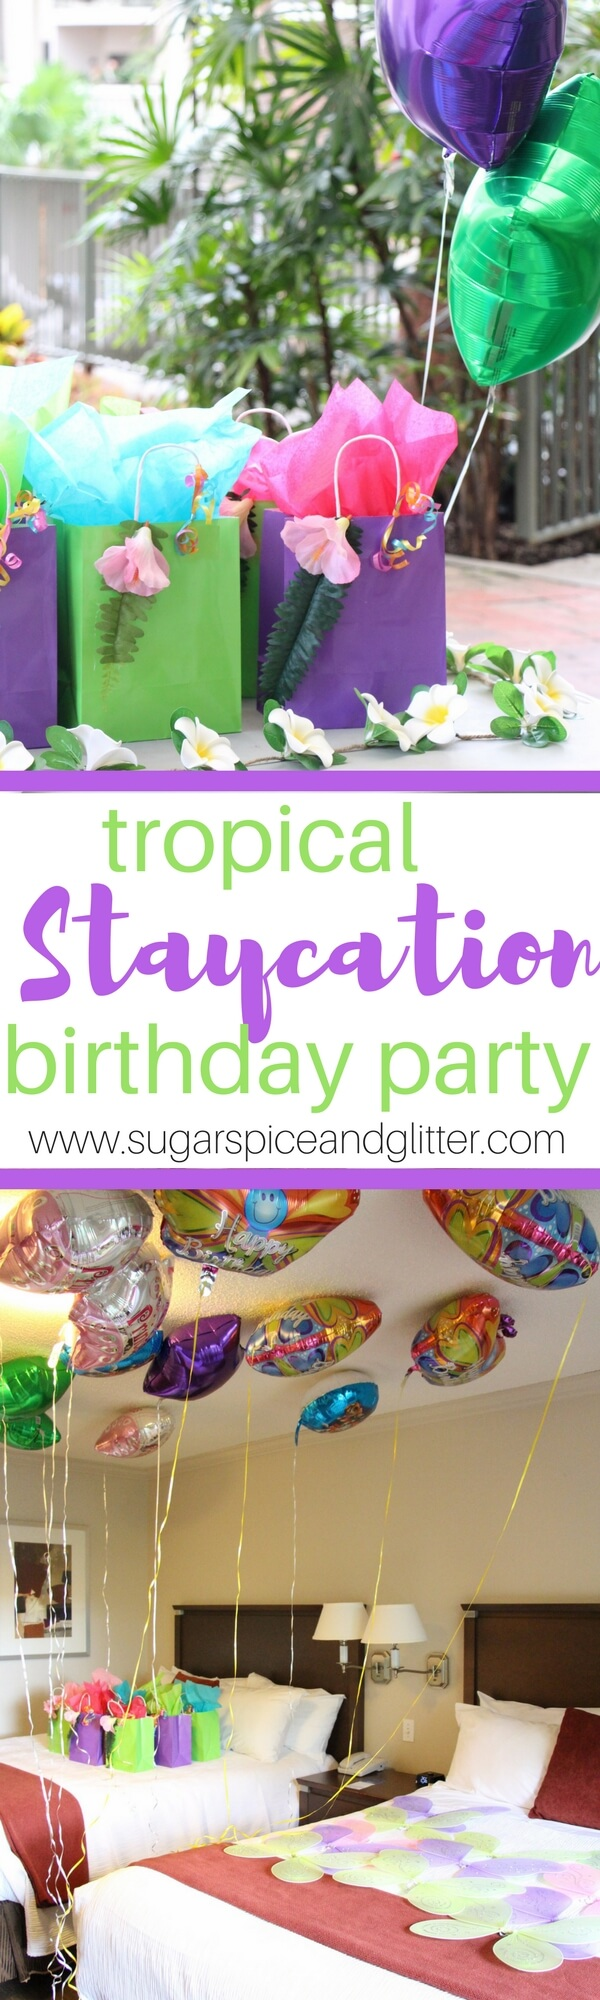 DIY Tropical Gift Bags and a Tropical Staycation Party Idea. Perfect for a Moana-themed party or a fun sleepover party theme